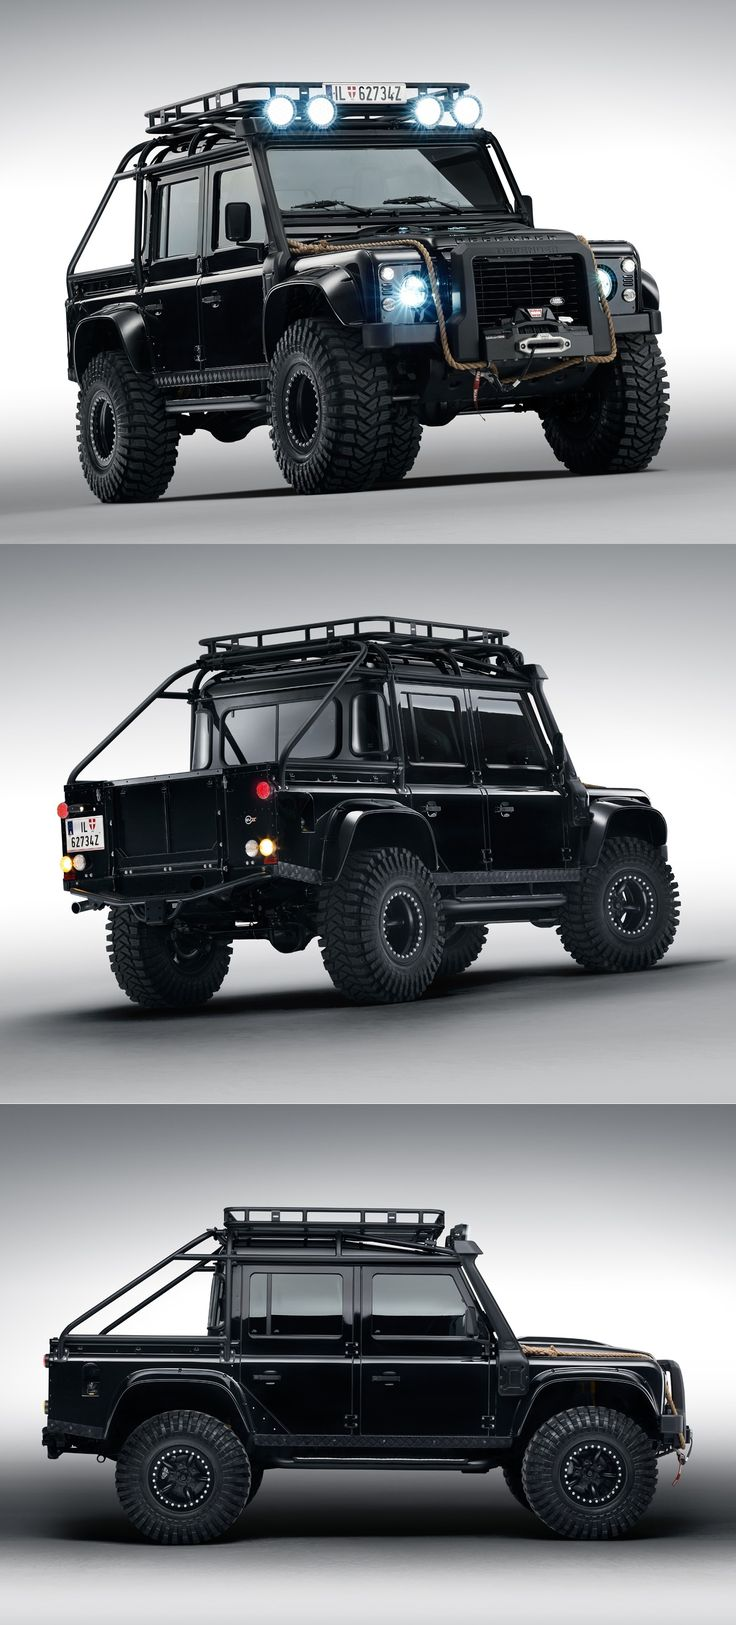 Land Rover Defender from James Bond Spectre